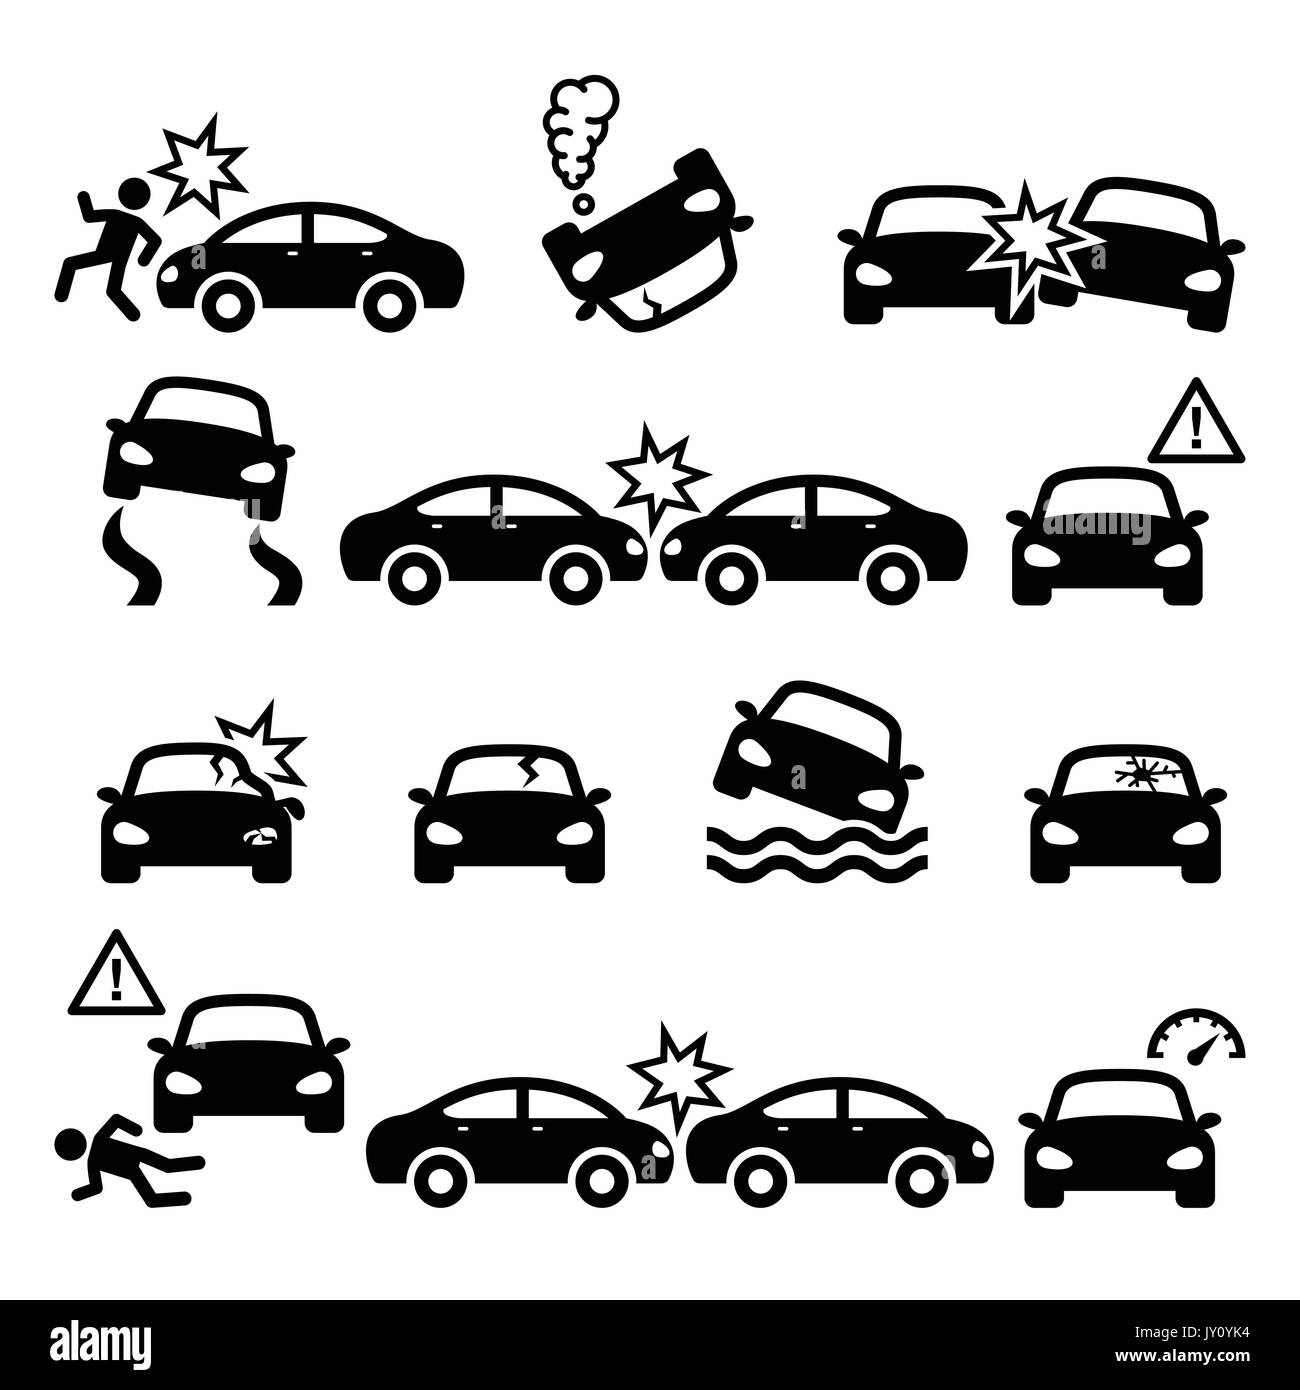 Road accident, car crash, personal injury vector icons set    Driver crushing car on road, auto wreck icons set isolated on white - Stock Image